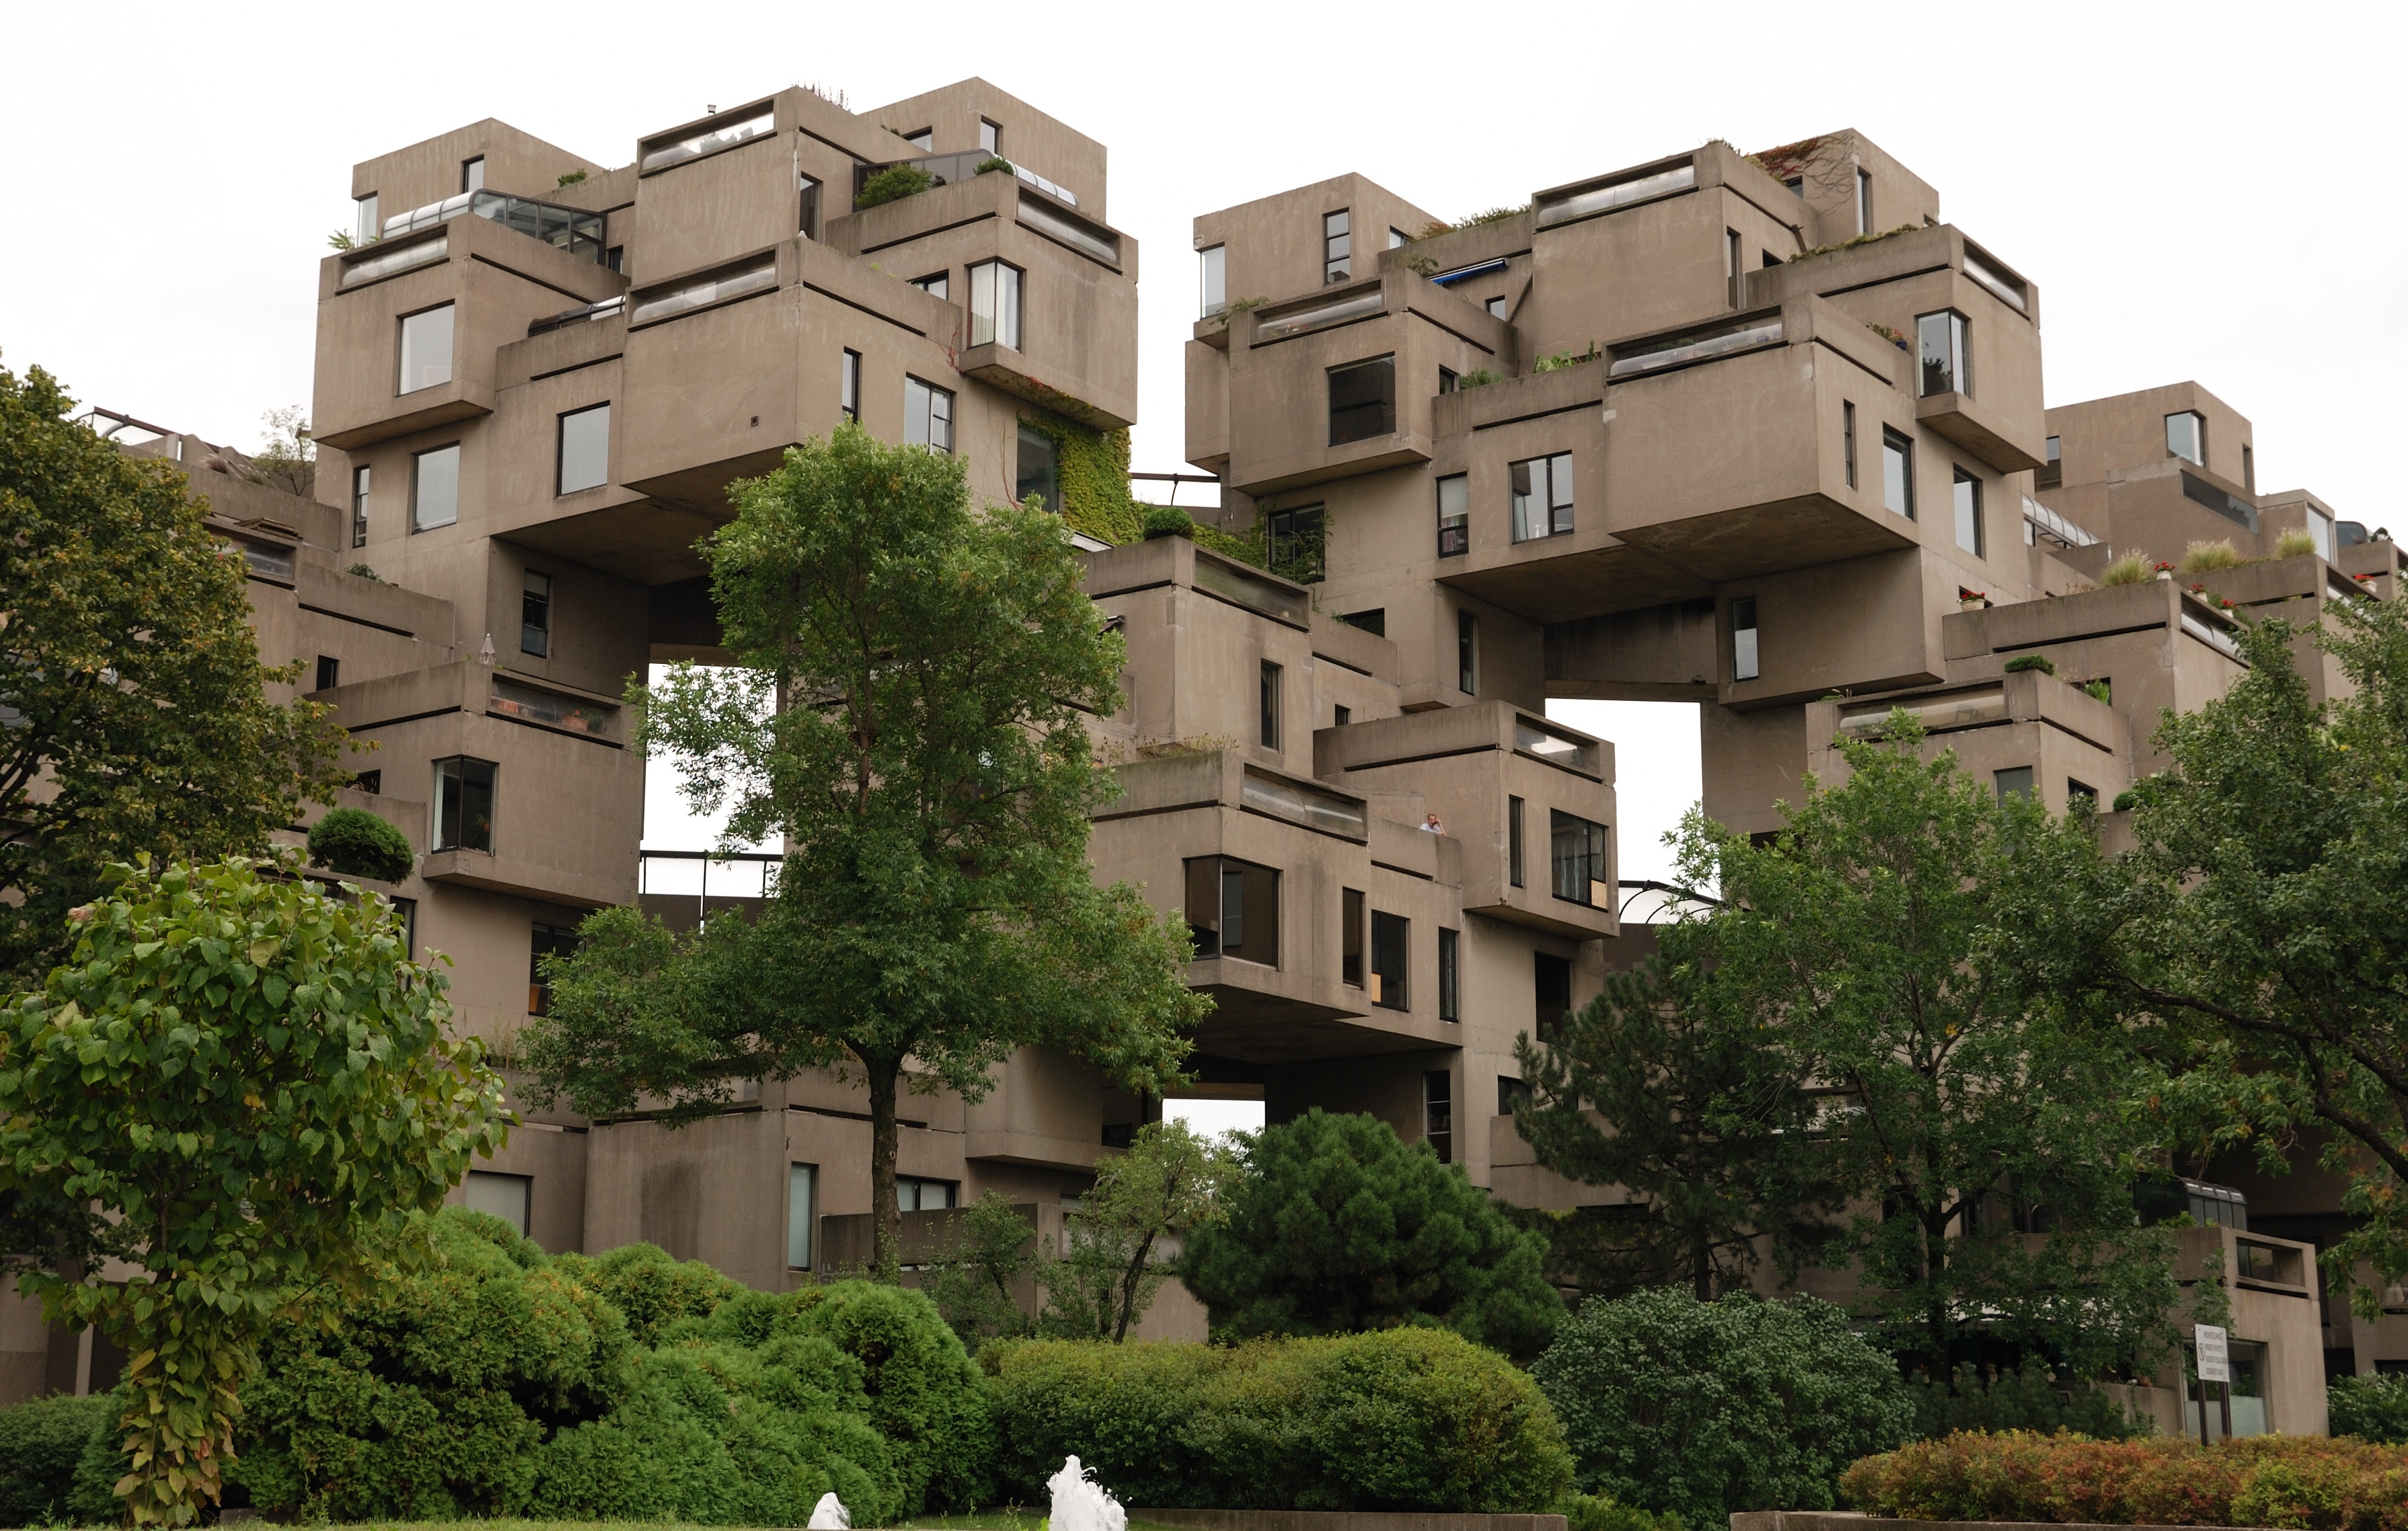 HABITAT 67 [Montreal, Canadá] wikipedia/commons